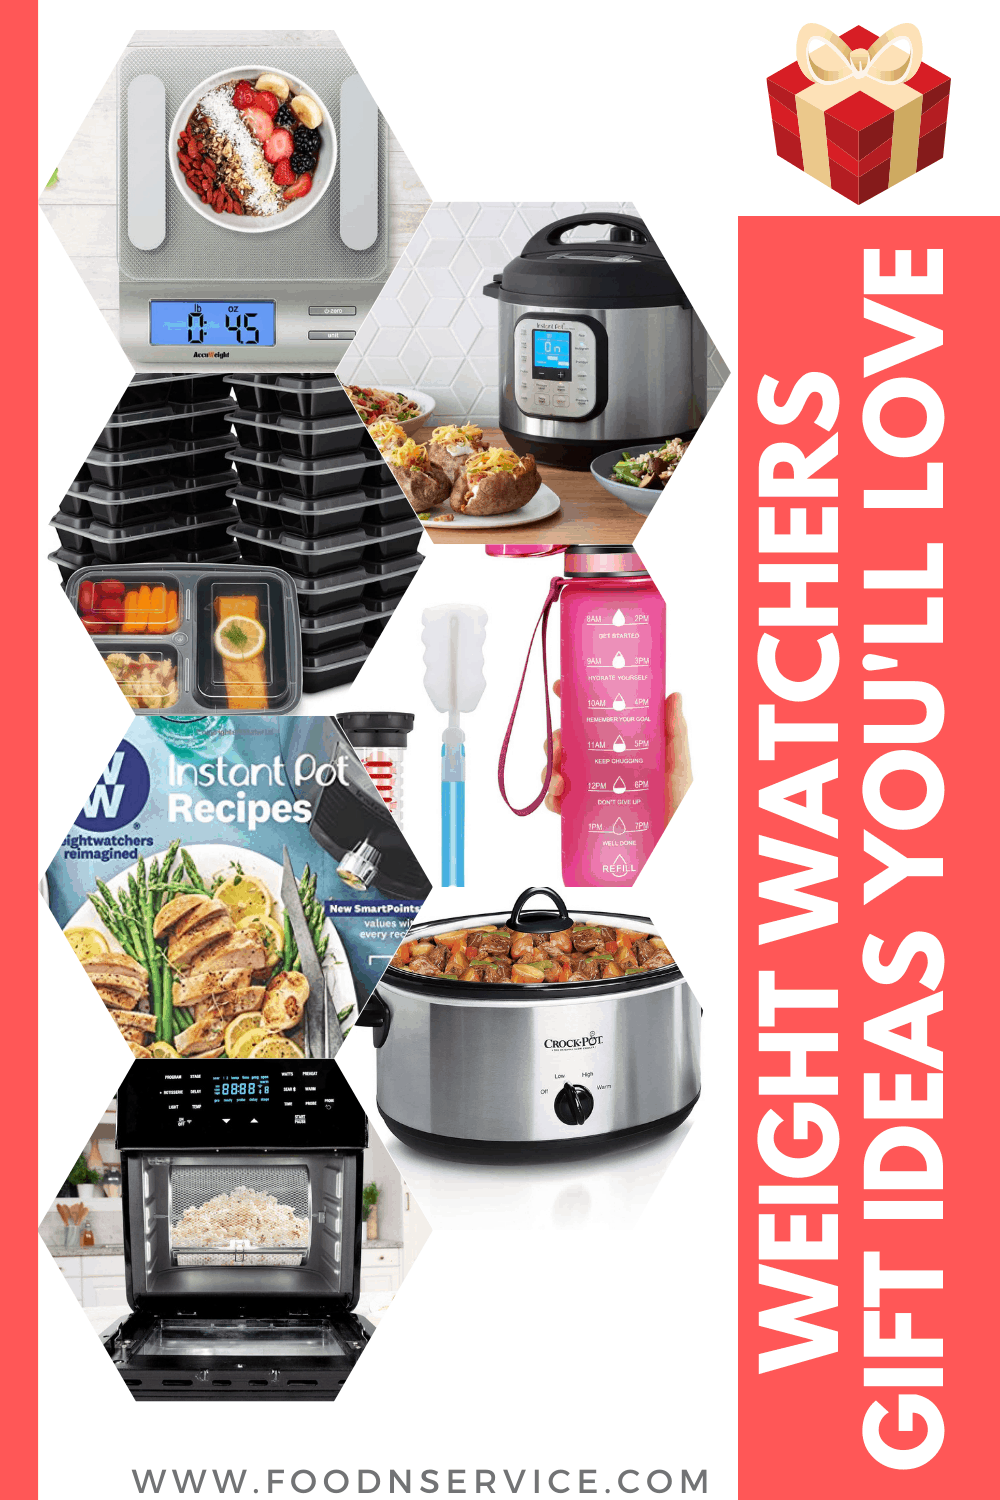 Weight Watchers Gift Ideas You\'ll Love for a Healthier You